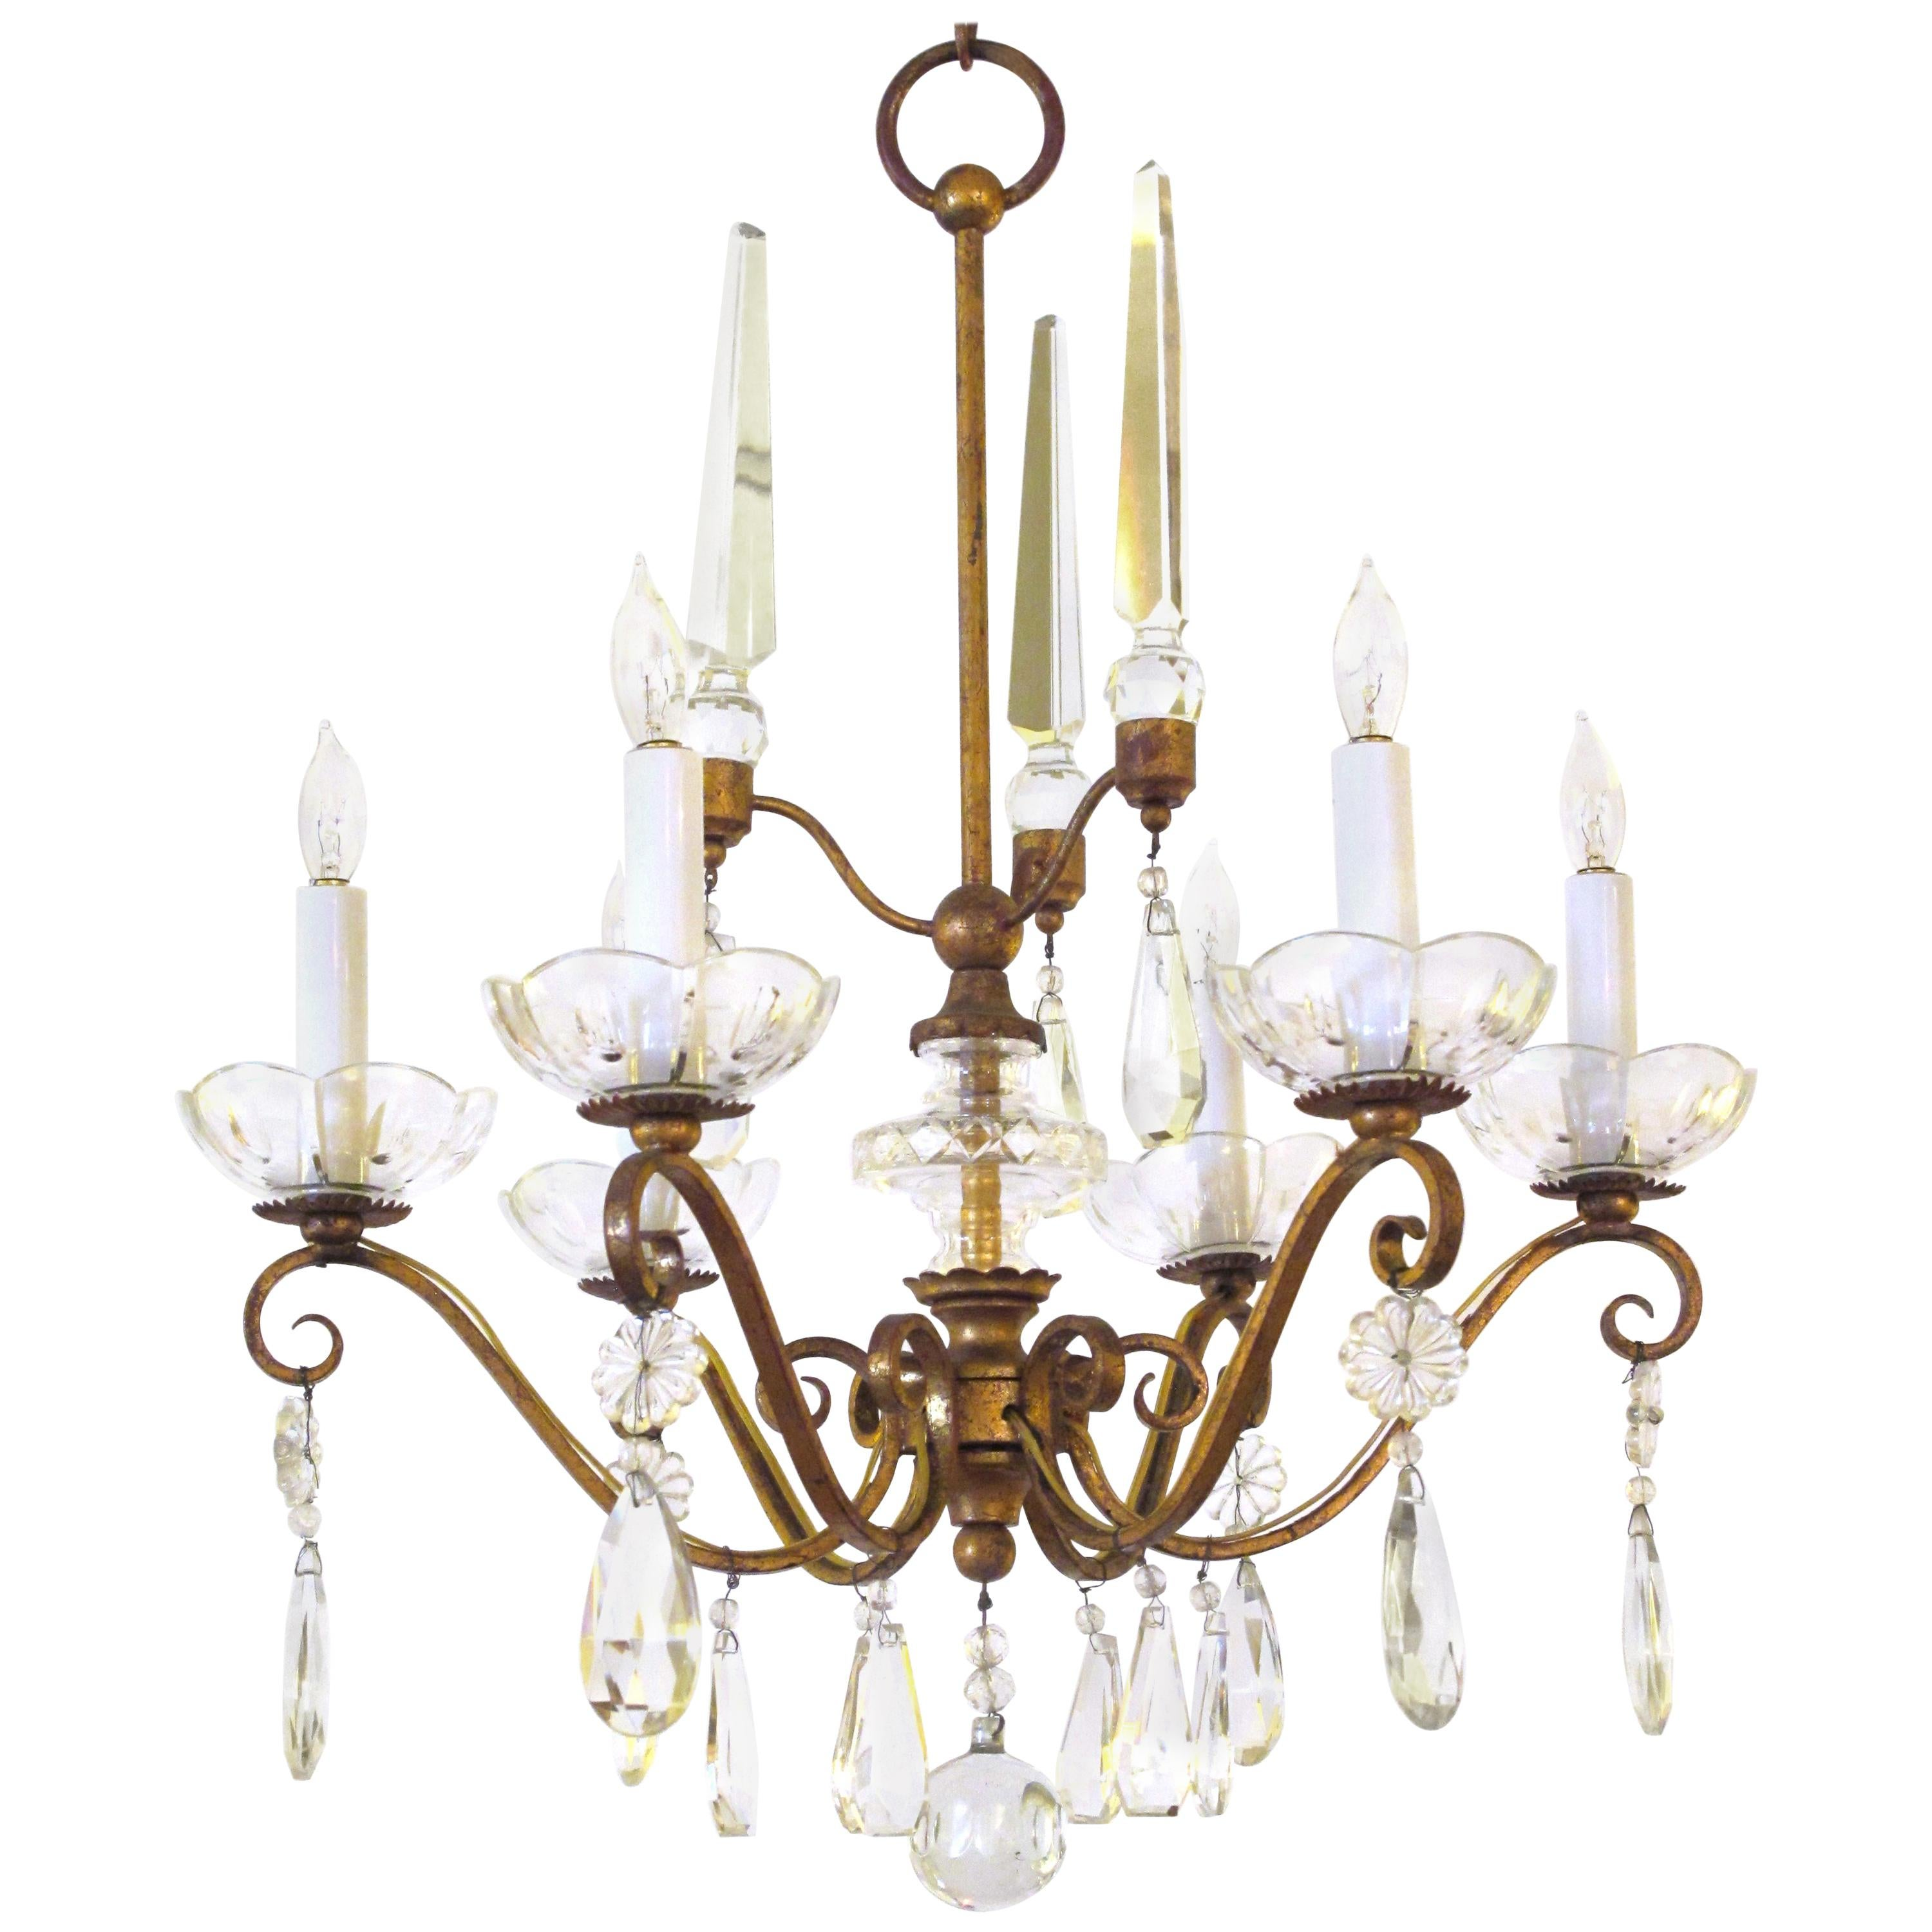 French 1940s Gilt-Metal 6-Light Chandelier with Crystal Pendants